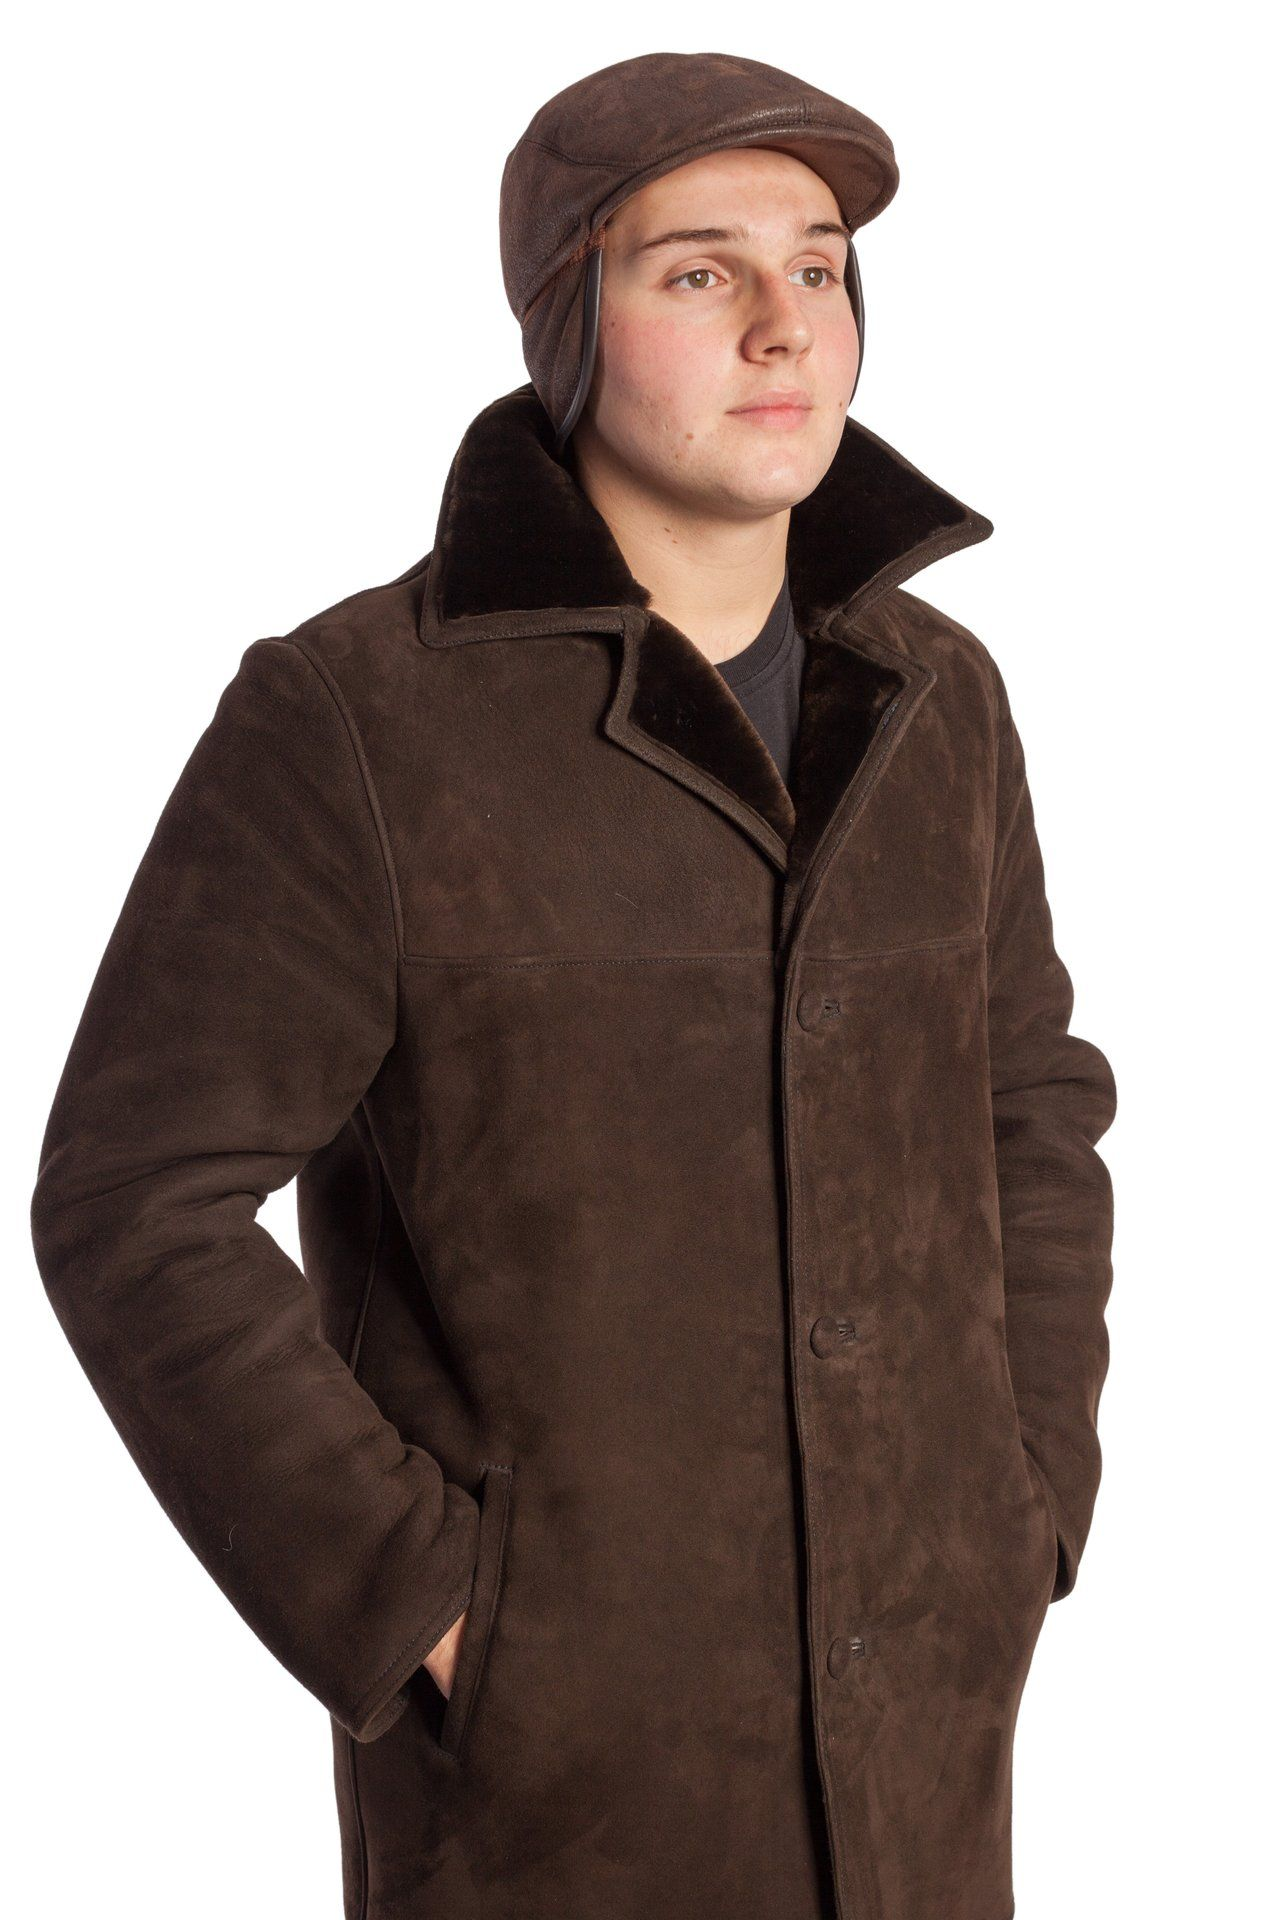 Male lambskin cap with French style - Garay Furrier 08d12fb90a